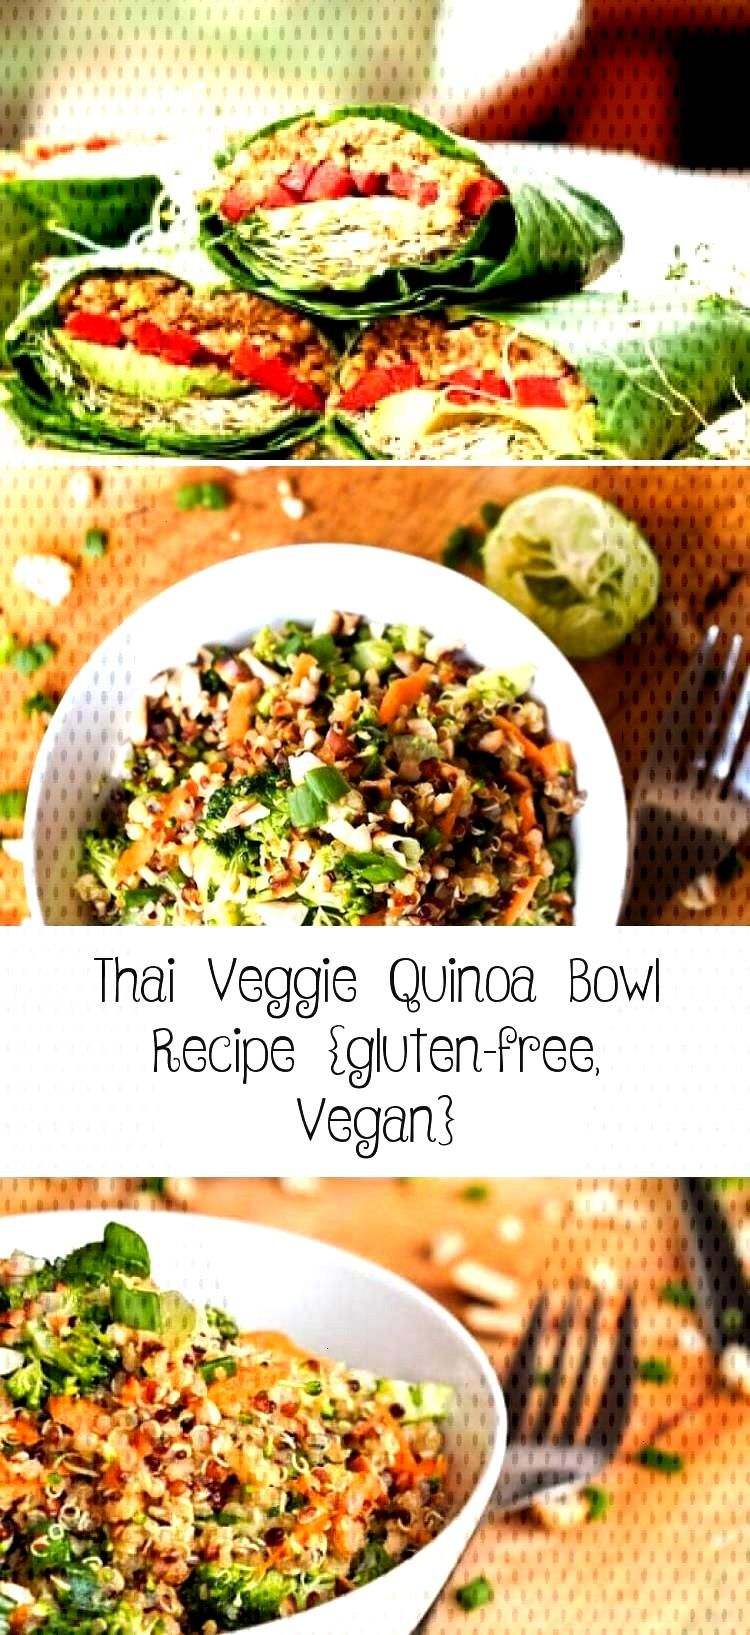 This Thai veggie quinoa bowl recipe is so delicious! Its the perfect one pot meal, because its fu